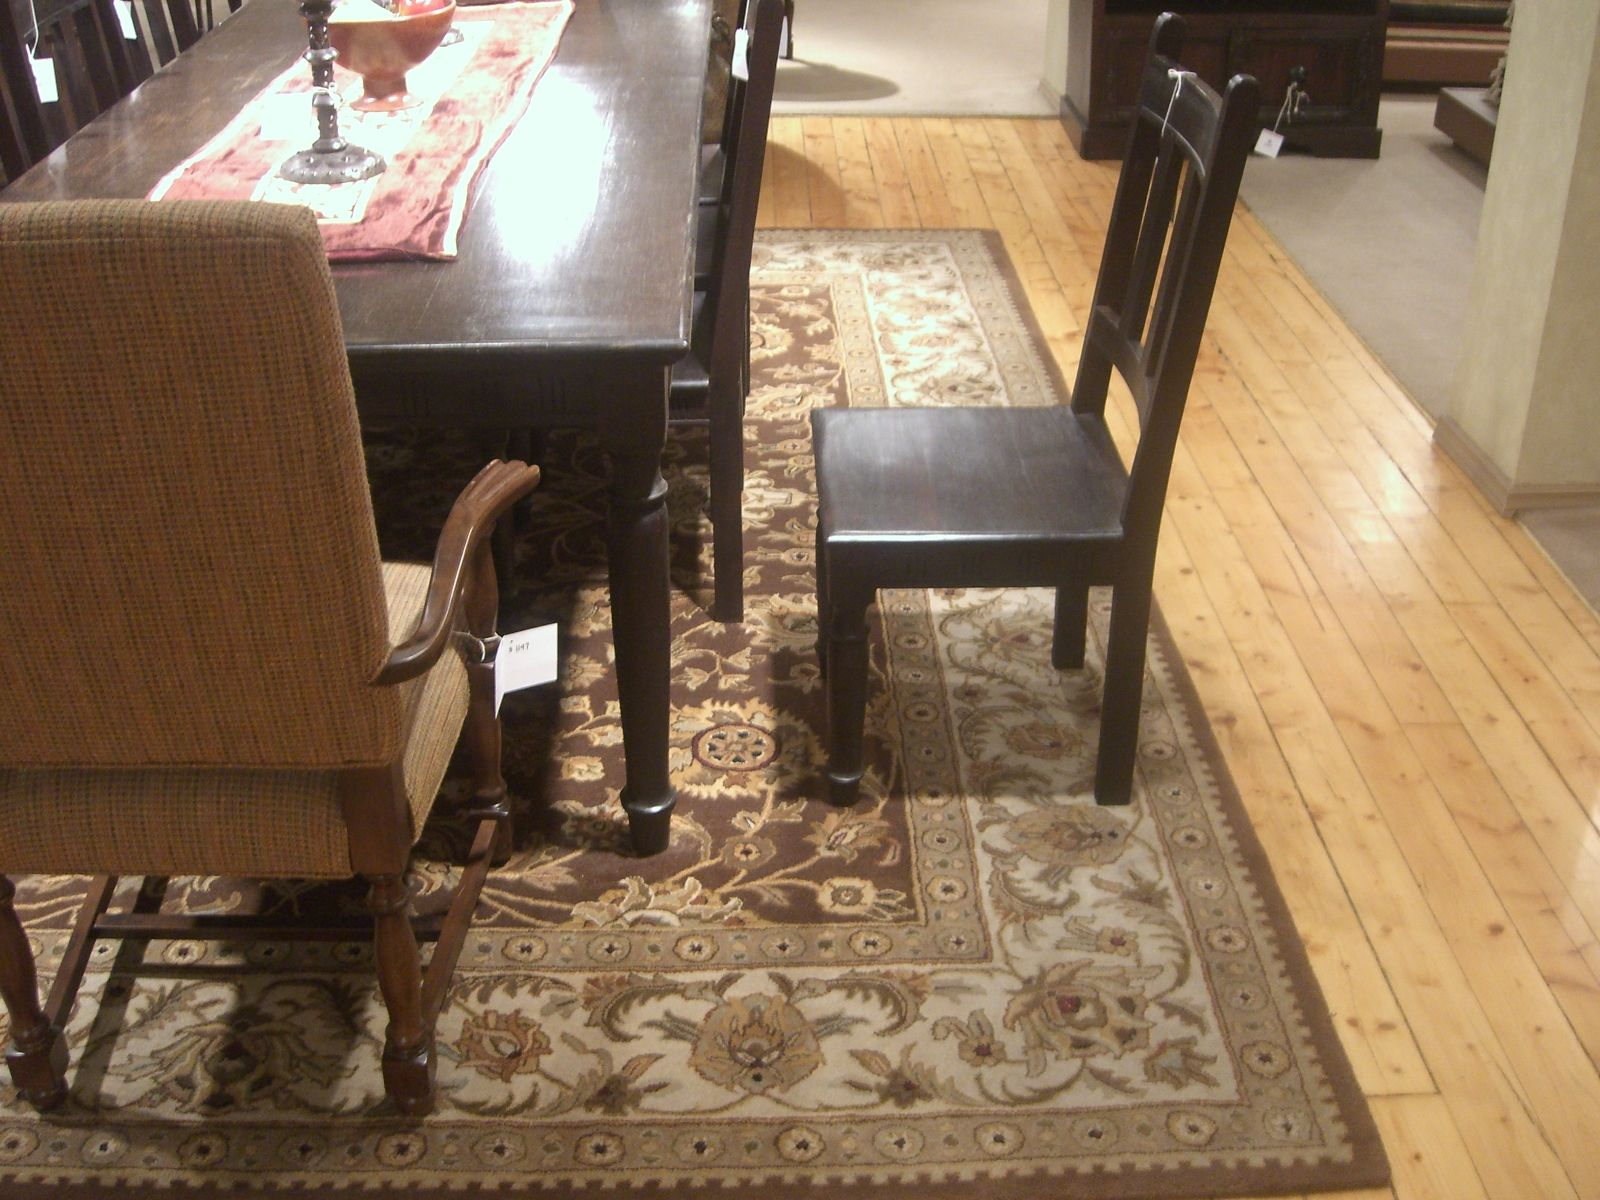 Decorating Living Room Using Area Rugs Lowes Plus Chair And Wooden Floor Area Room Rugs Dining Room Rug Dining Table Rug #rugs #for #living #room #8x10